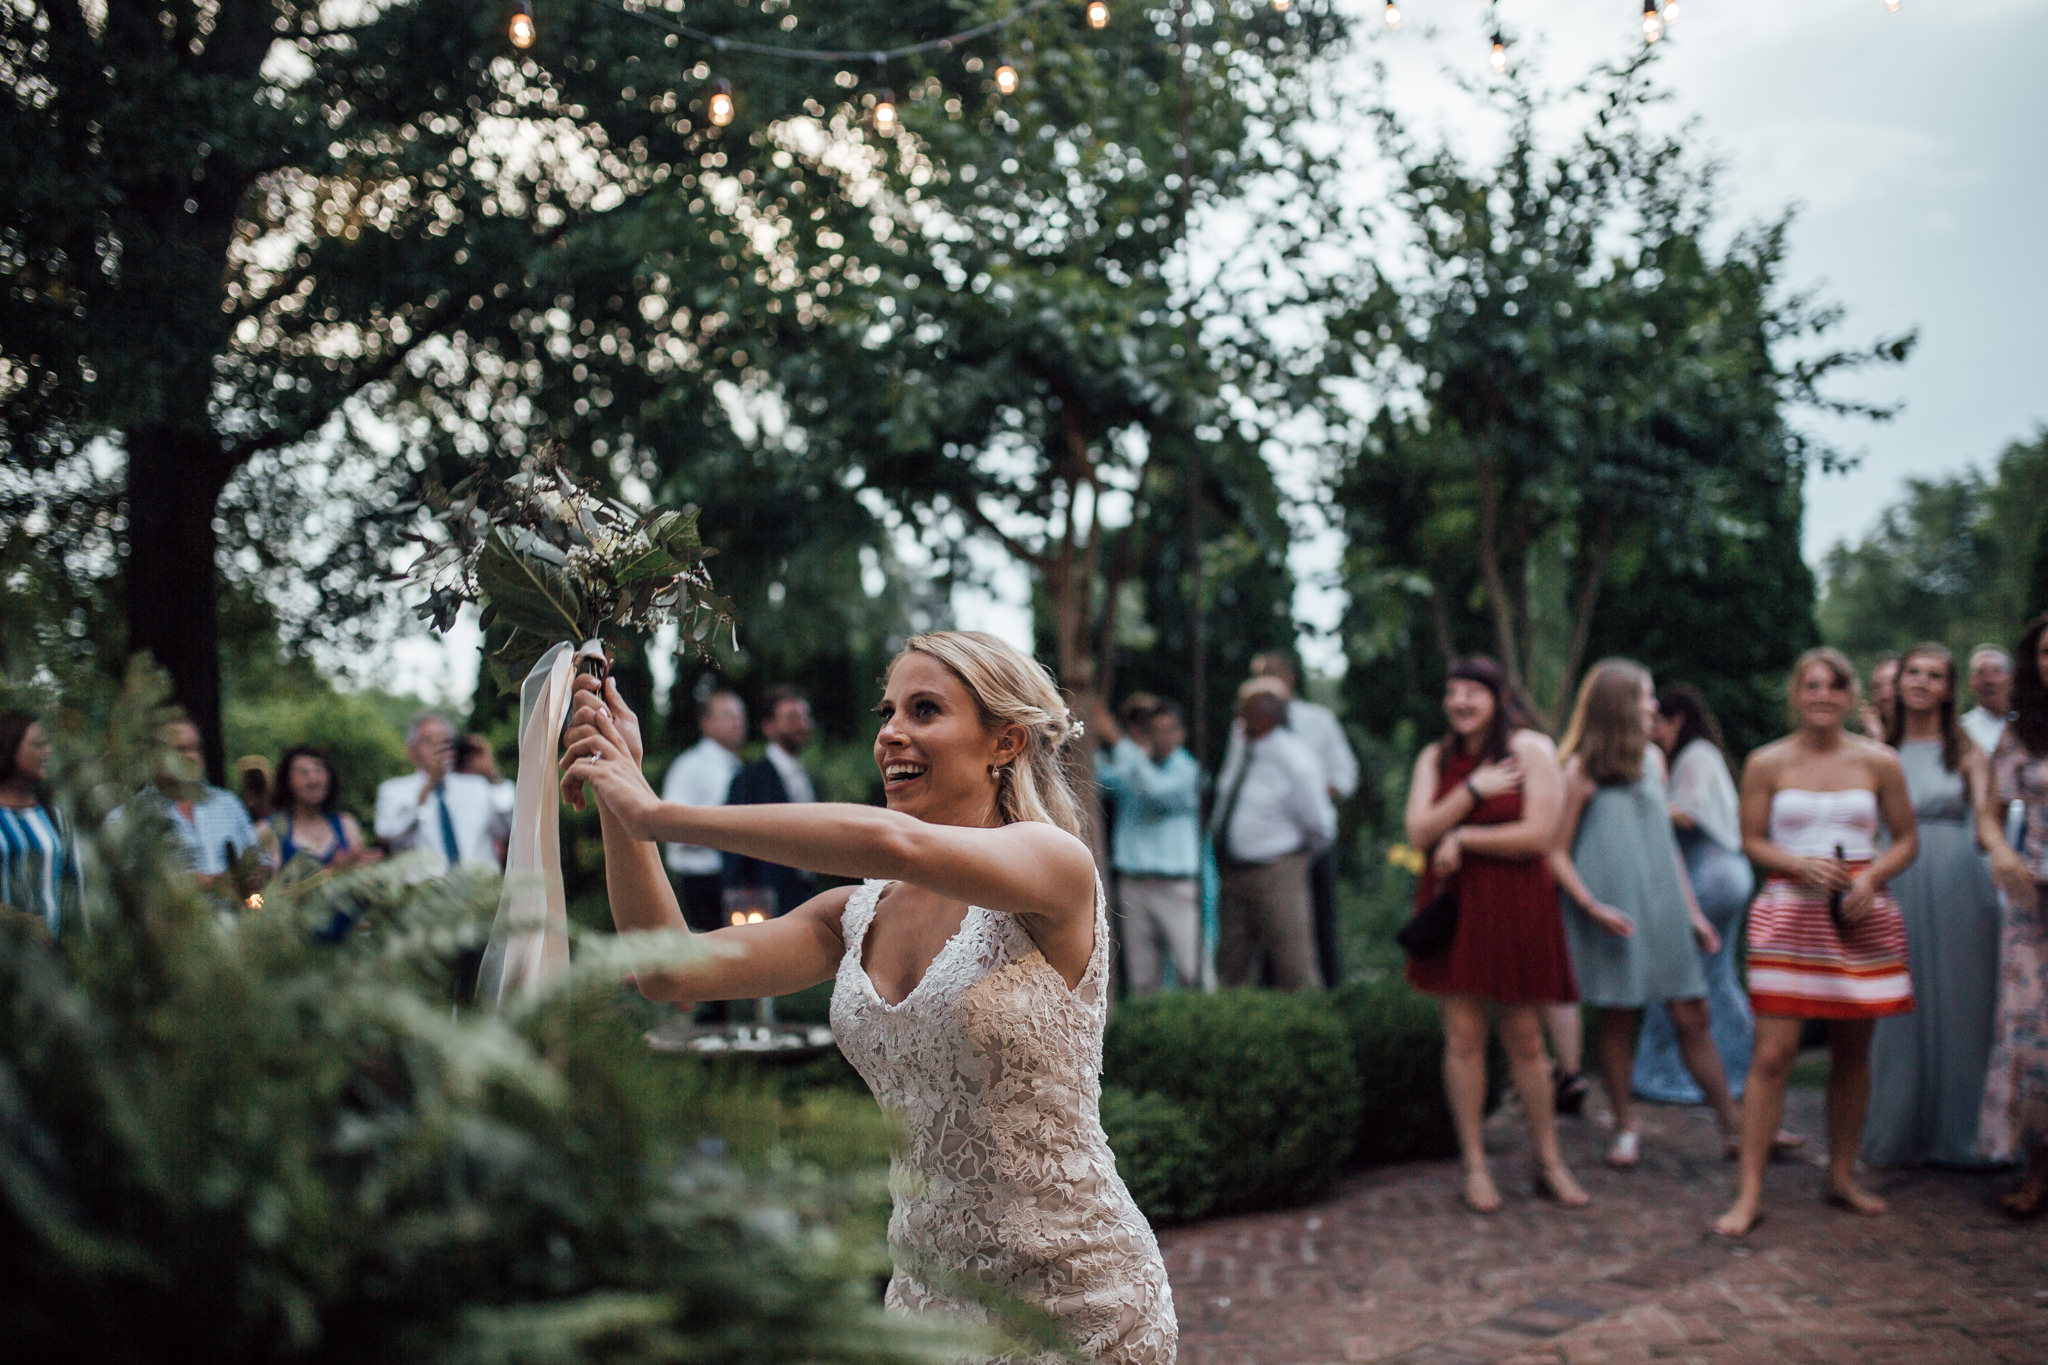 cassie-cook-photography-hedge-farm-wedding-venue-memphis-wedding-photographer-mcglaughlin-wedding